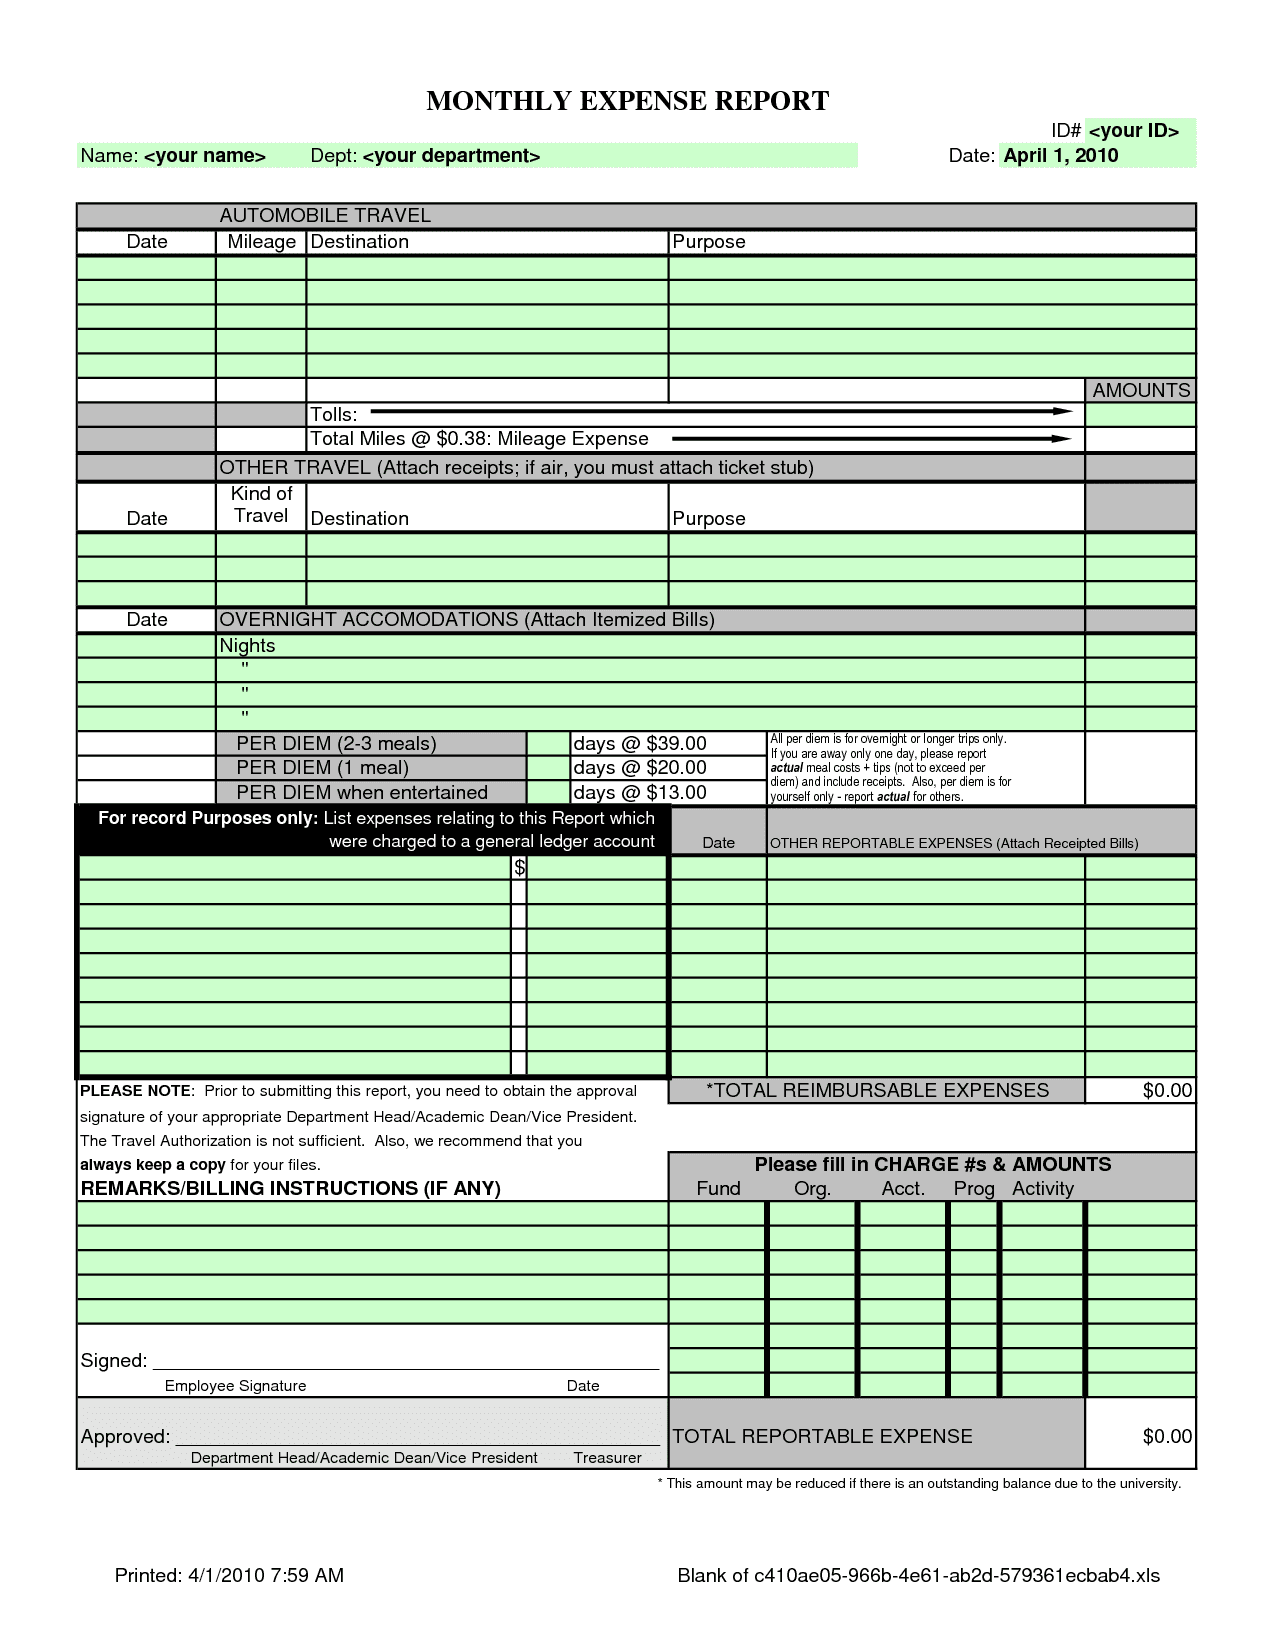 Microsoft Excel 2010 Expense Report Template And Expense Report Reimbursement Template